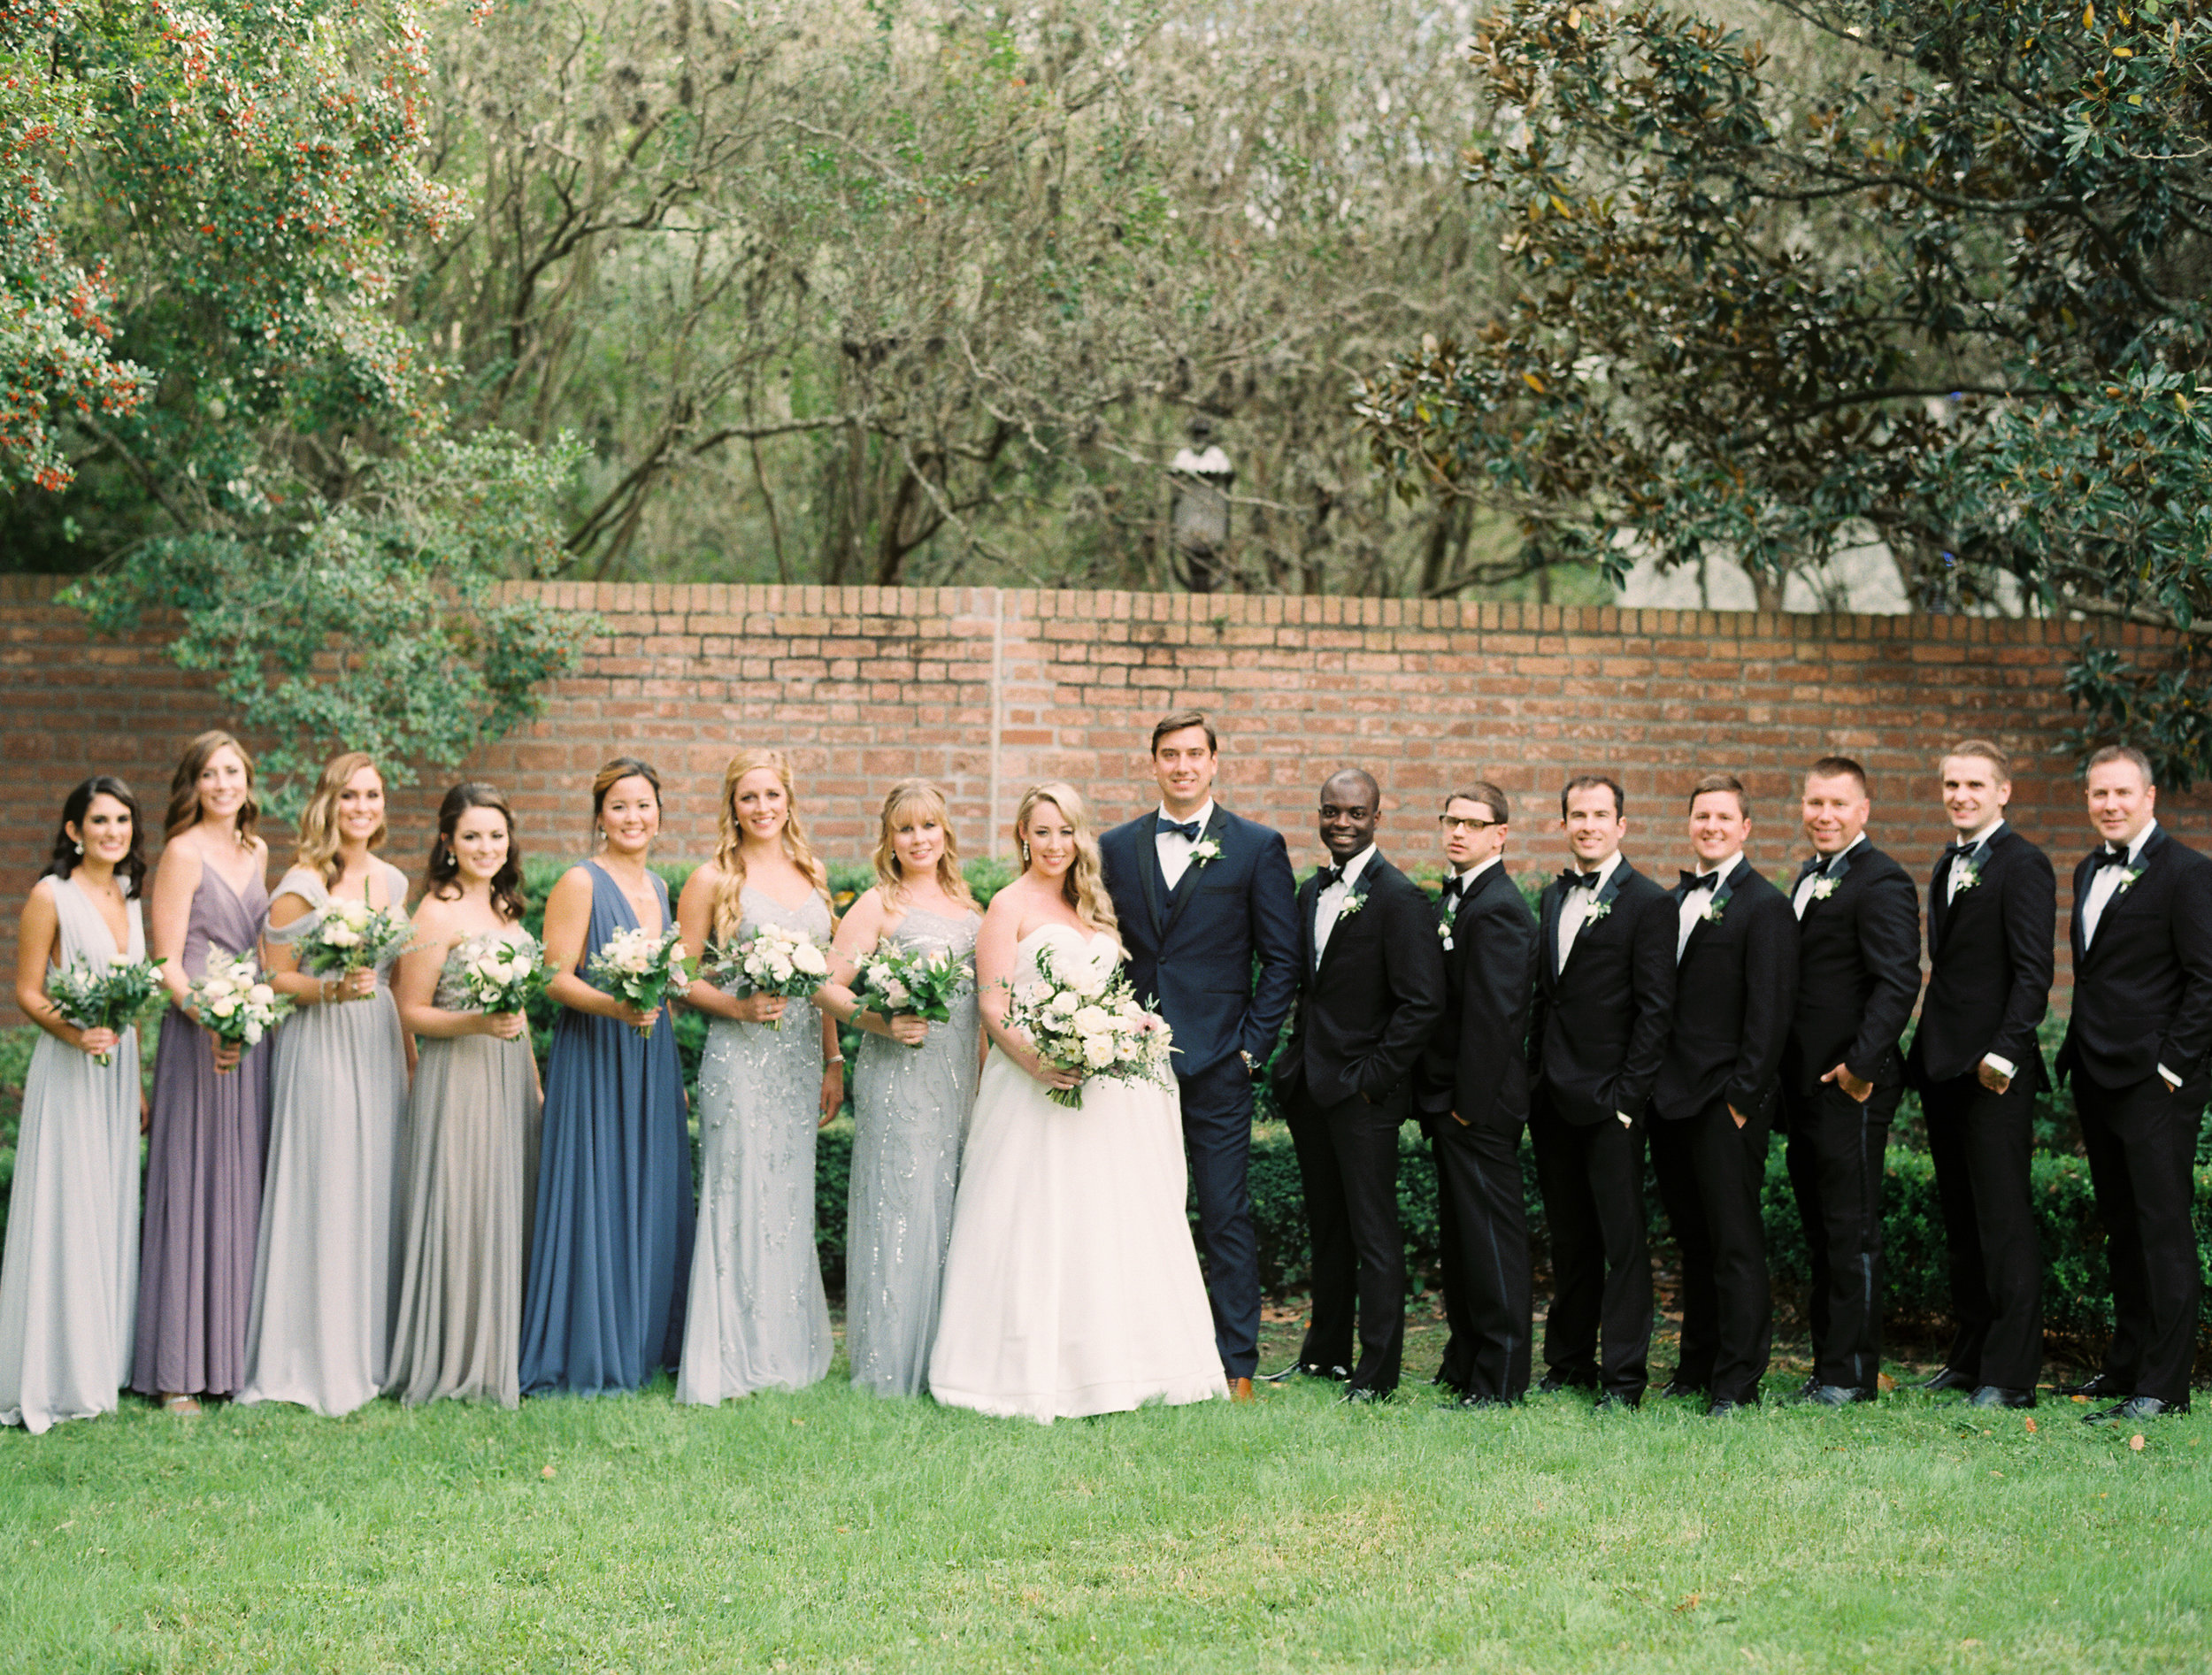 Courtney+Scott (27 of 79).jpg